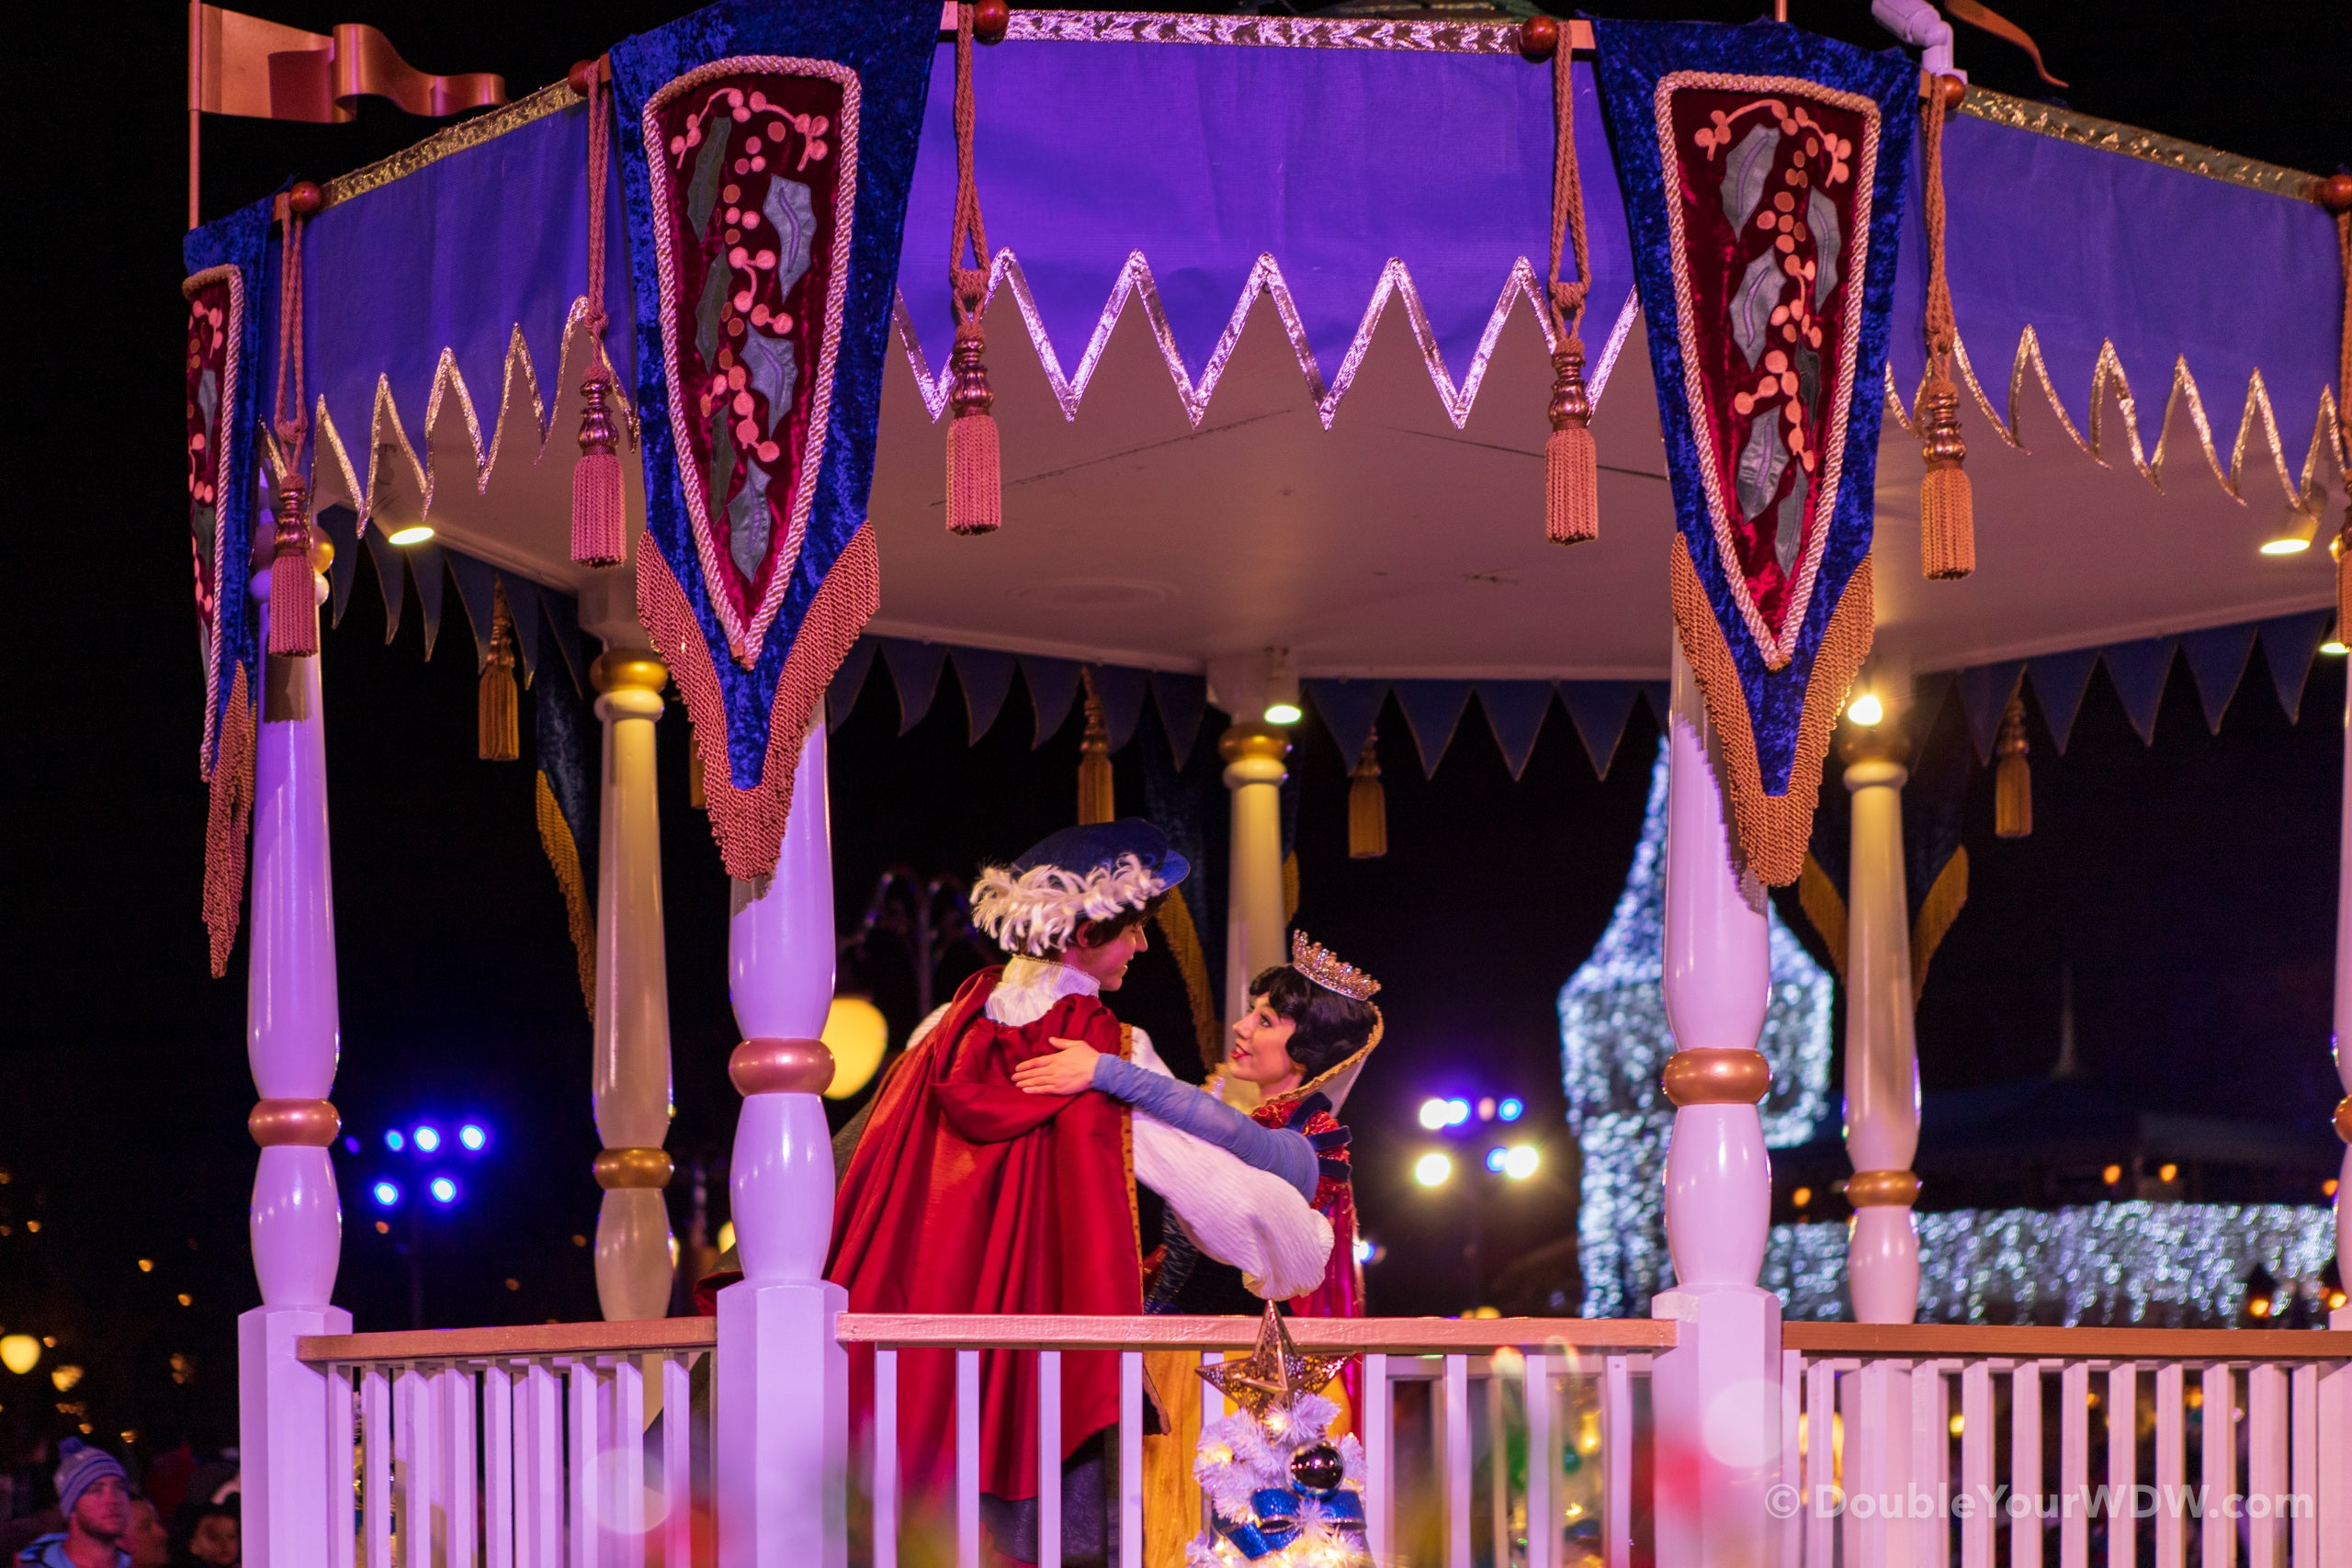 Snow White at Mickey's Once Upon a Christmastime Parade